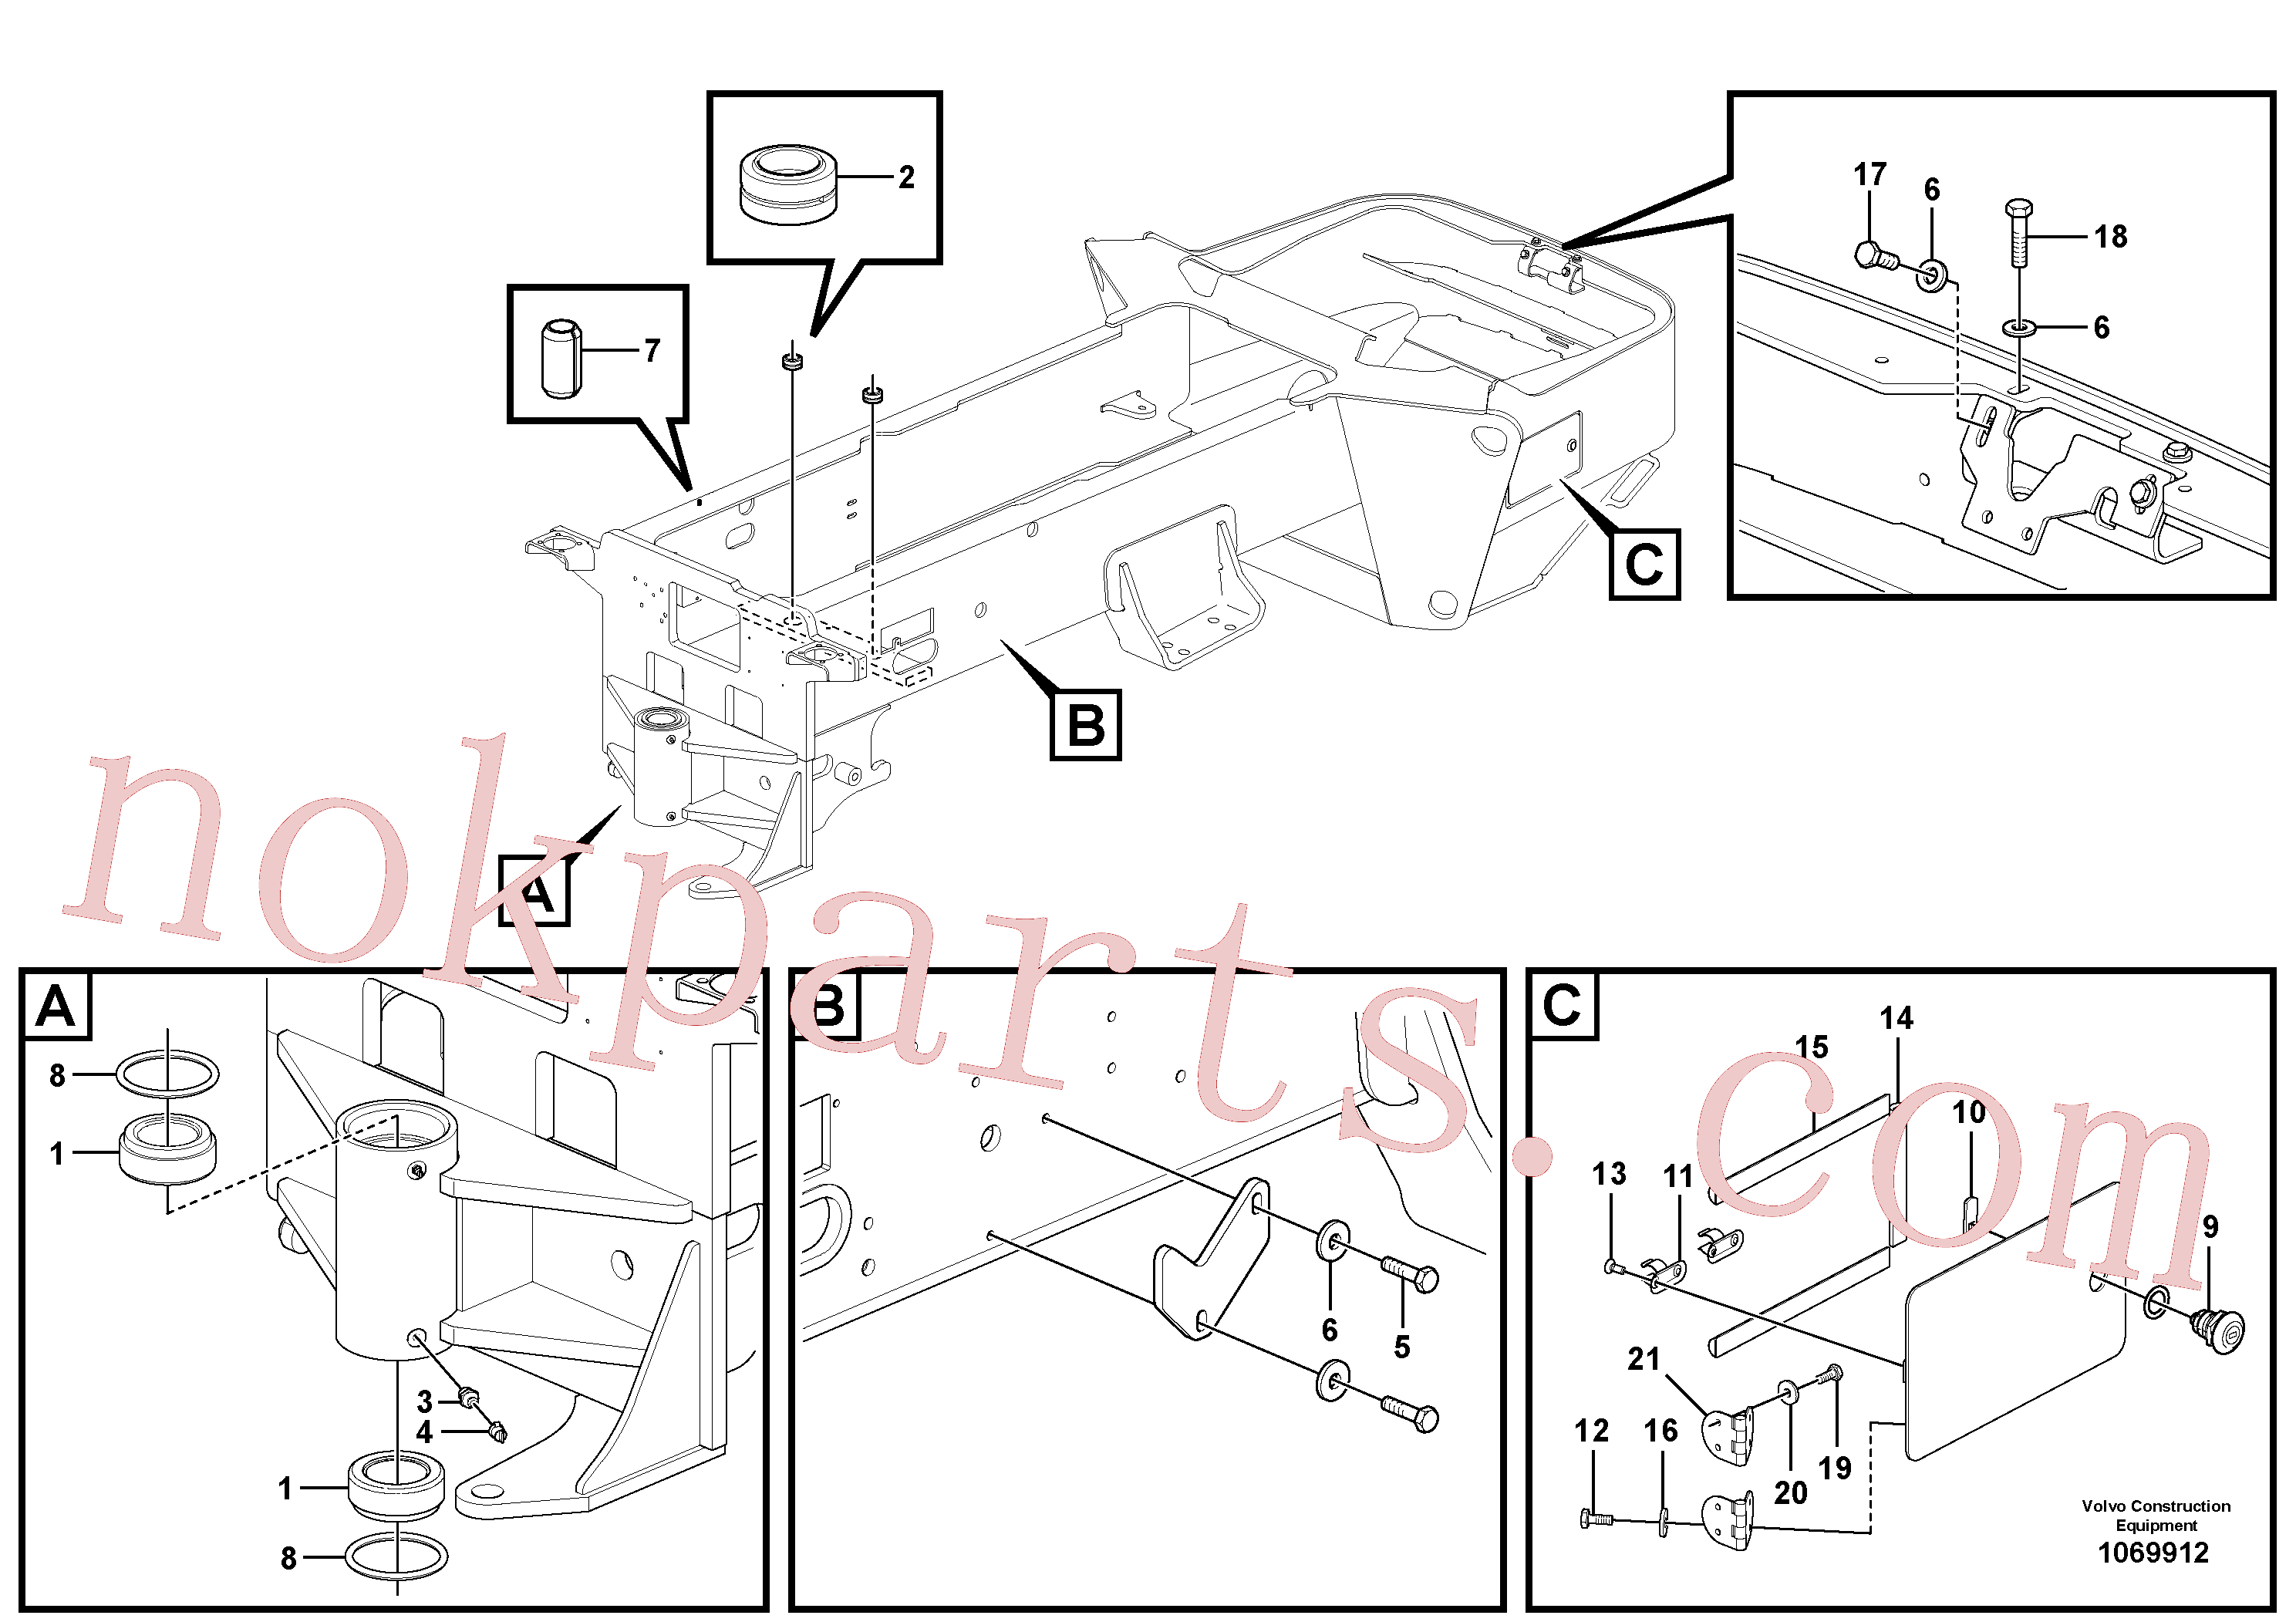 VOE12787930 for Volvo Rear Frame Installation(1069912 assembly)